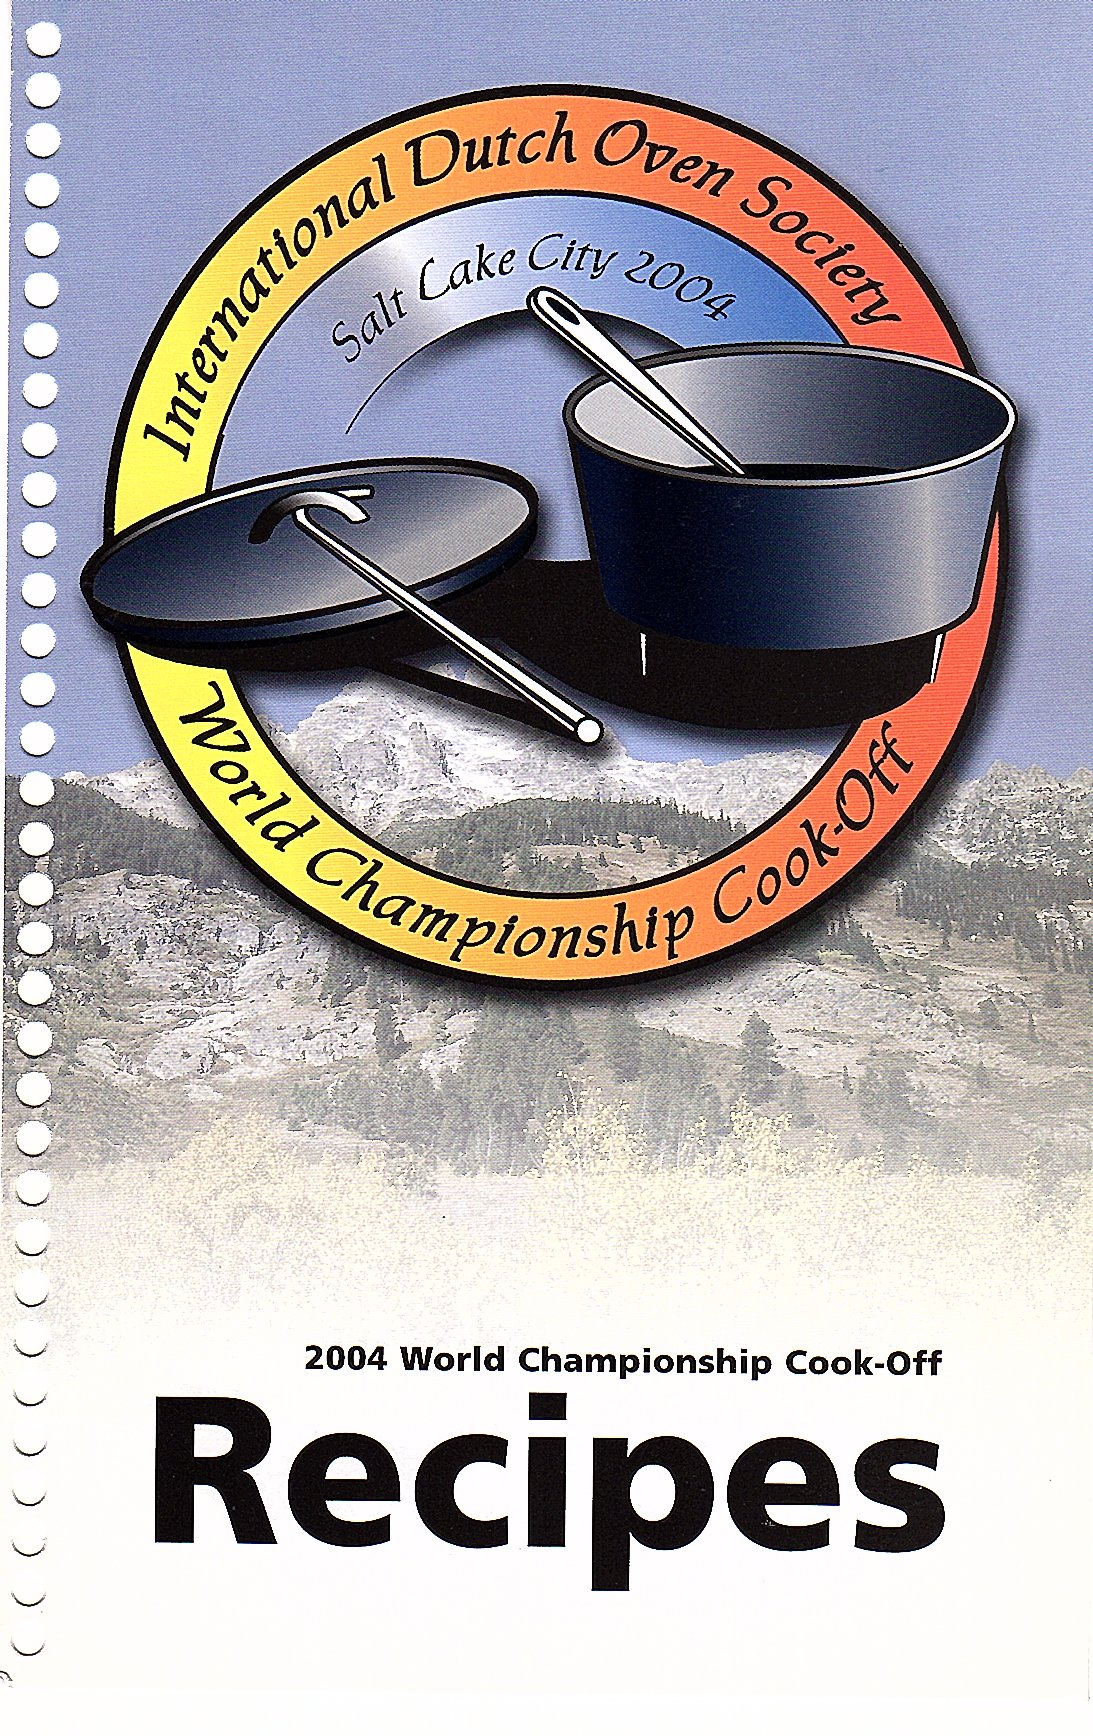 International Dutch Oven Society World Championship Cook-Off 2004 Recipes PDF